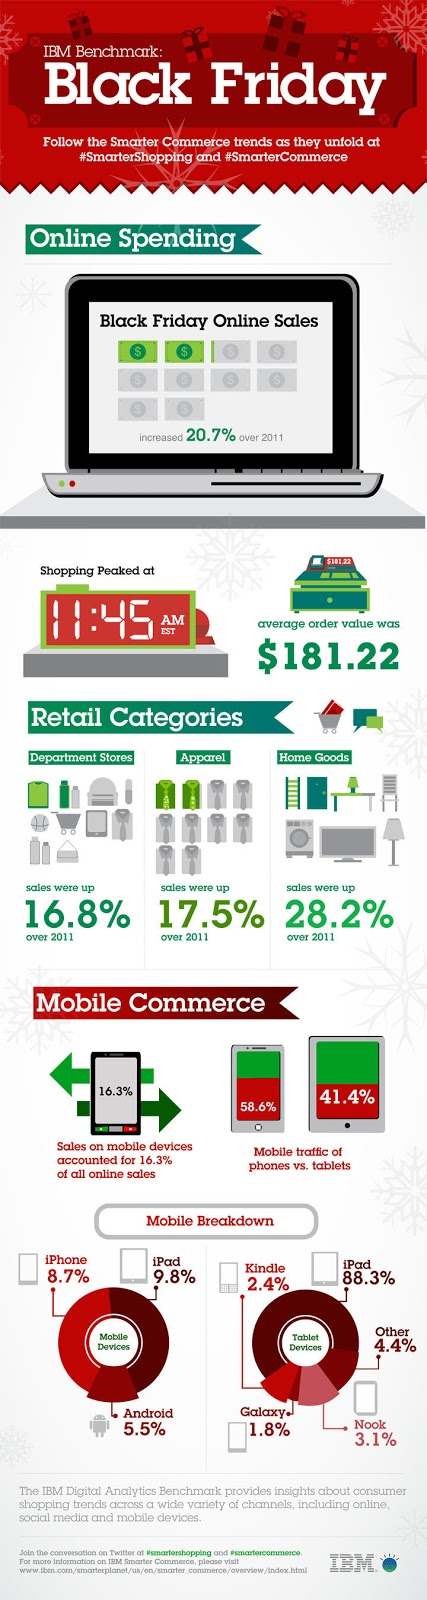 Smartphones accounted for 60% of Black Friday 2012 Mobile Traffic